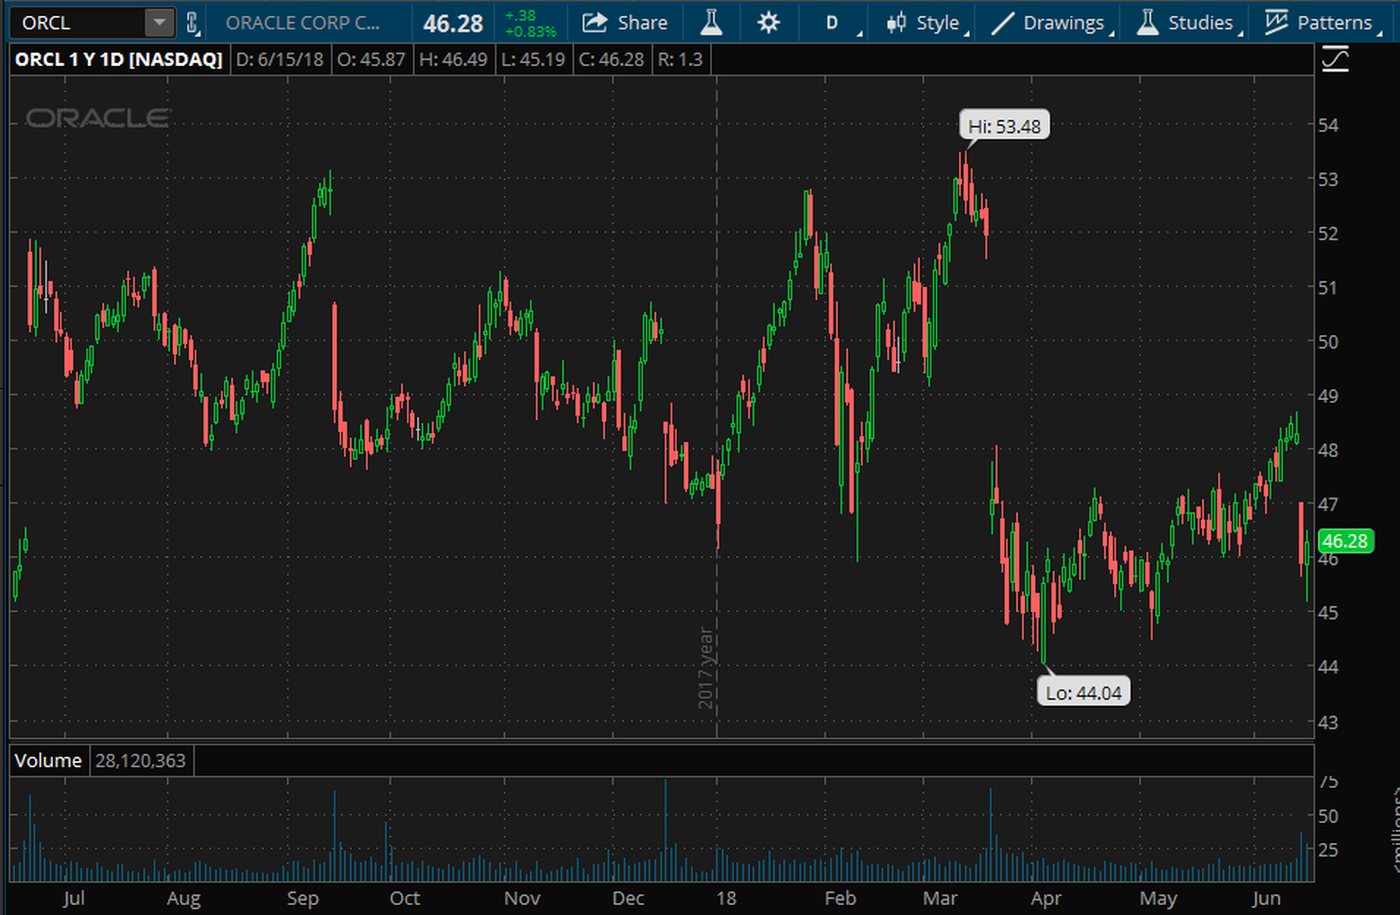 Oracle 1 Year Stock Chart